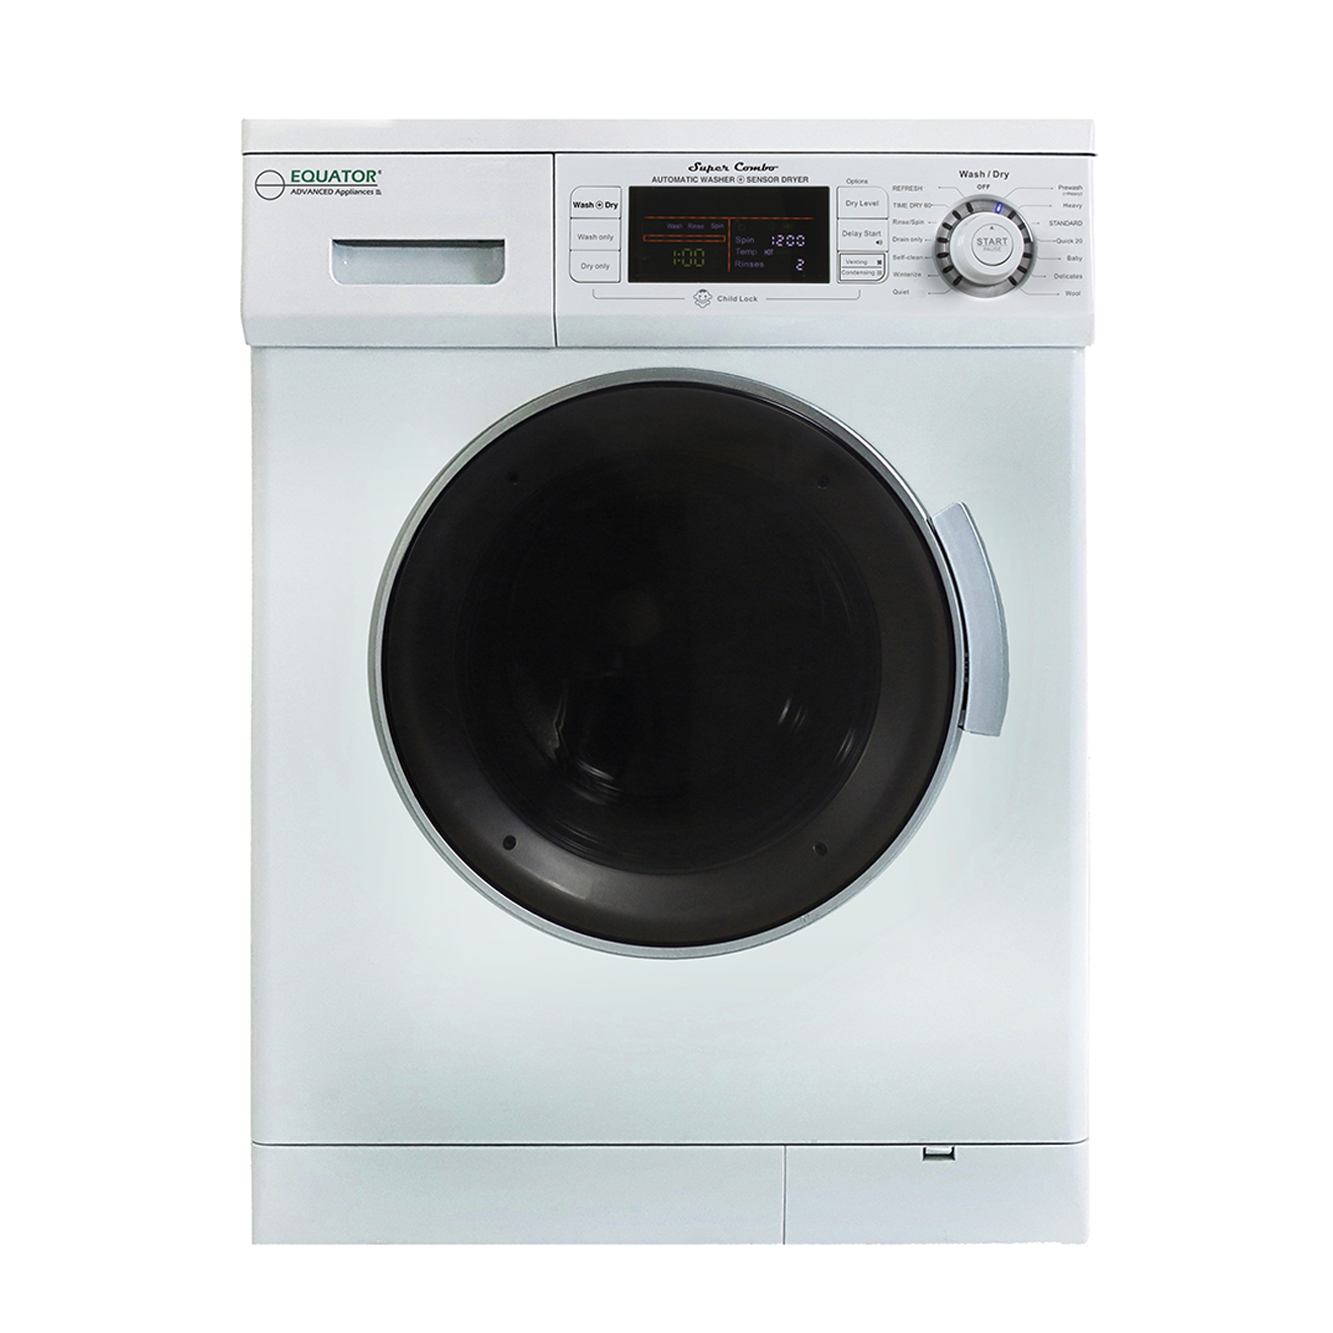 Equator Super Combo Washer-Dryer 4400N White